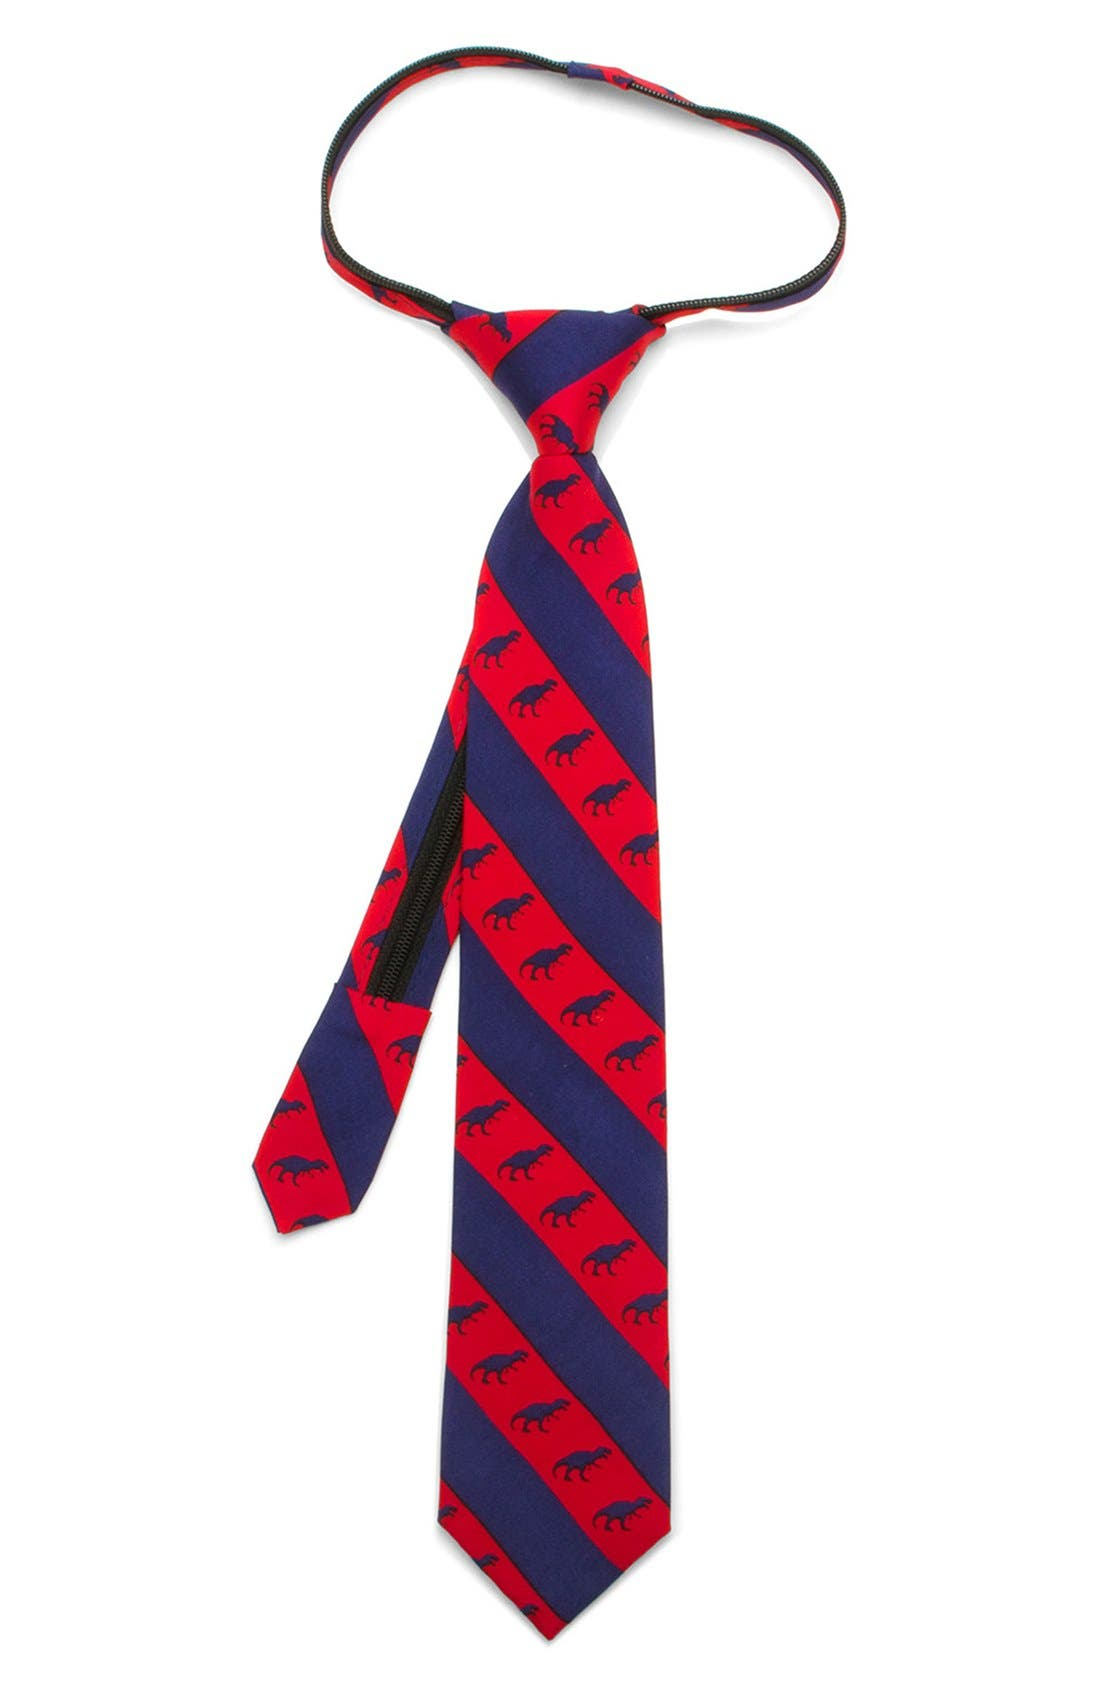 Ox and Bull Trading Co. 'T-Rex' Silk Tie (Little Boys)